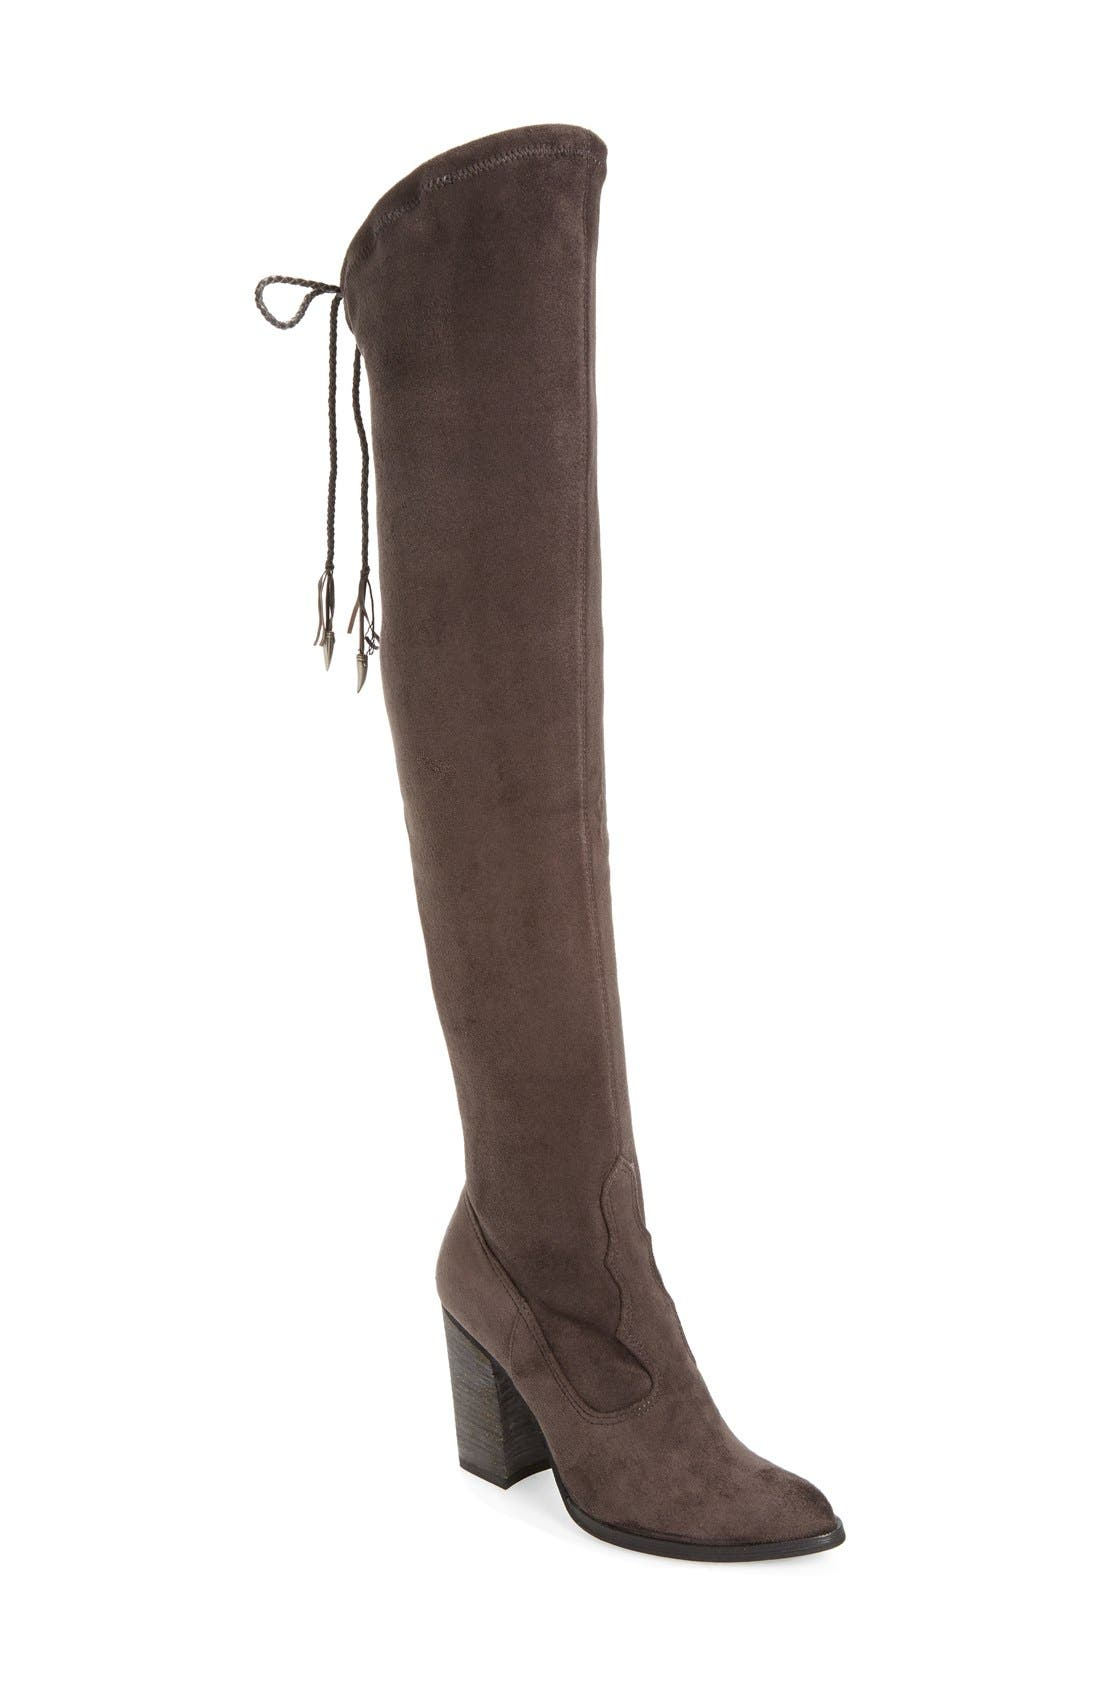 Alternate Image 1 Selected - Dolce Vita 'Chance' Over the Knee Stretch Boot (Women) (Narrow Calf)